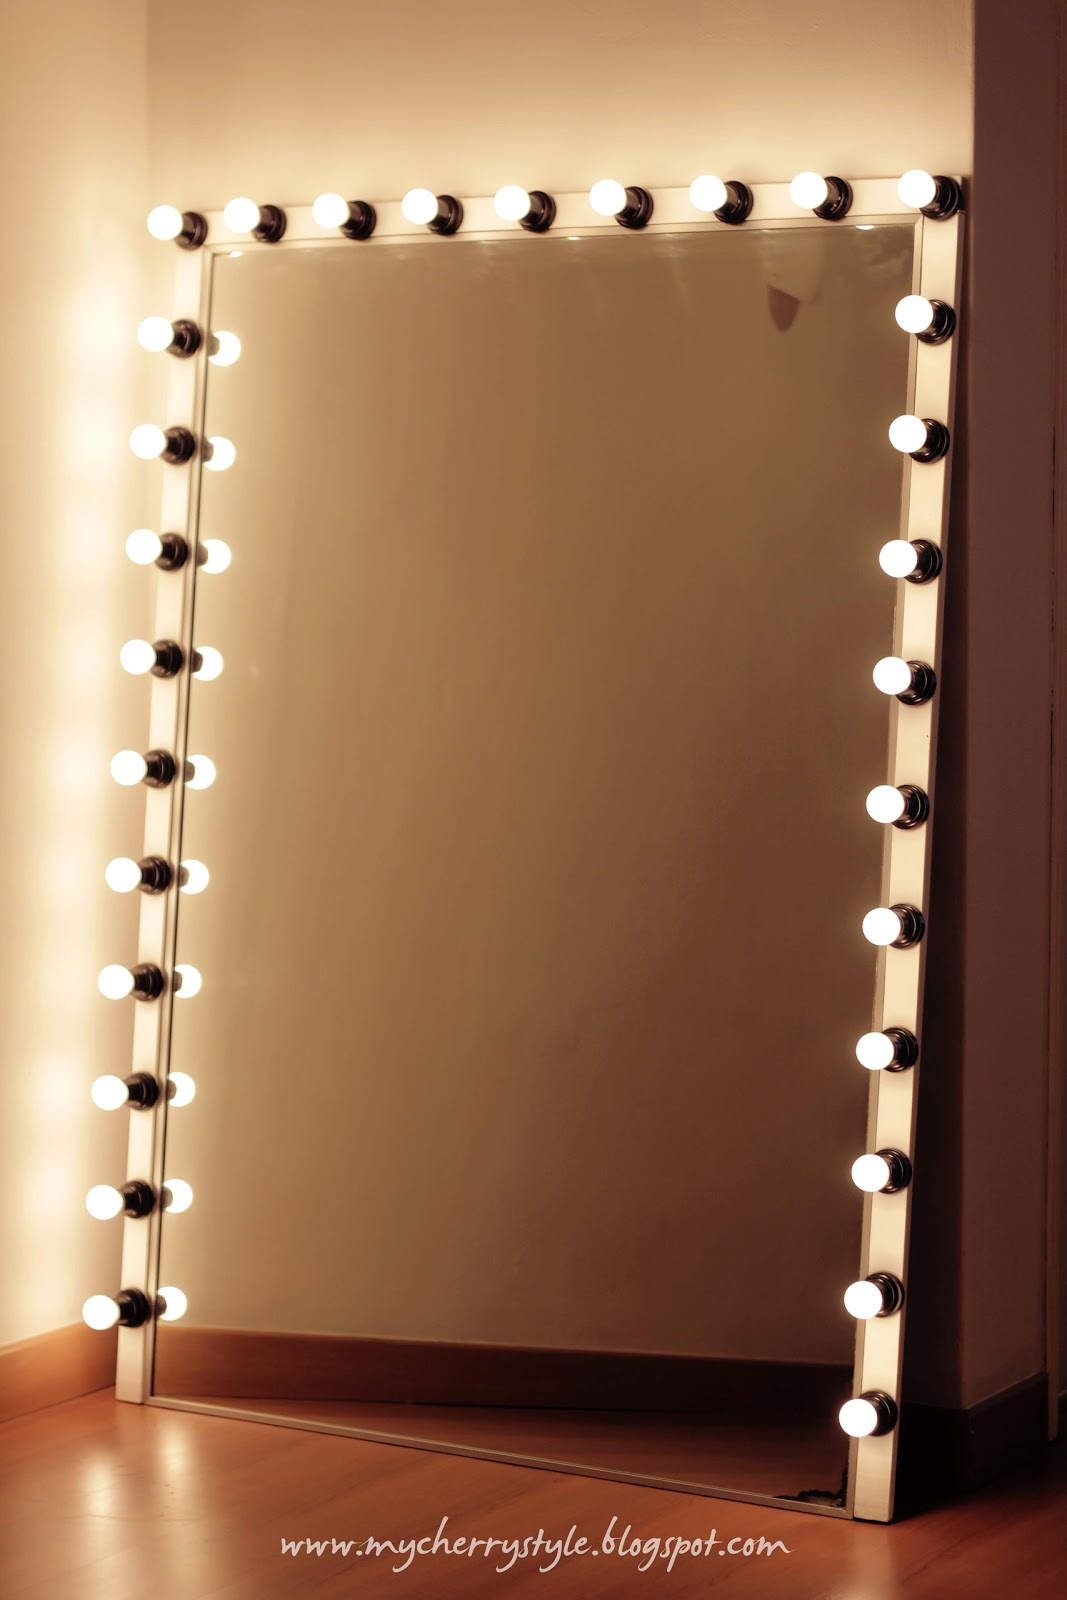 Vanity Mirror With Lights : DIY Hollywood-style mirror with lights! Tutorial from scratch. for real. my cherry style